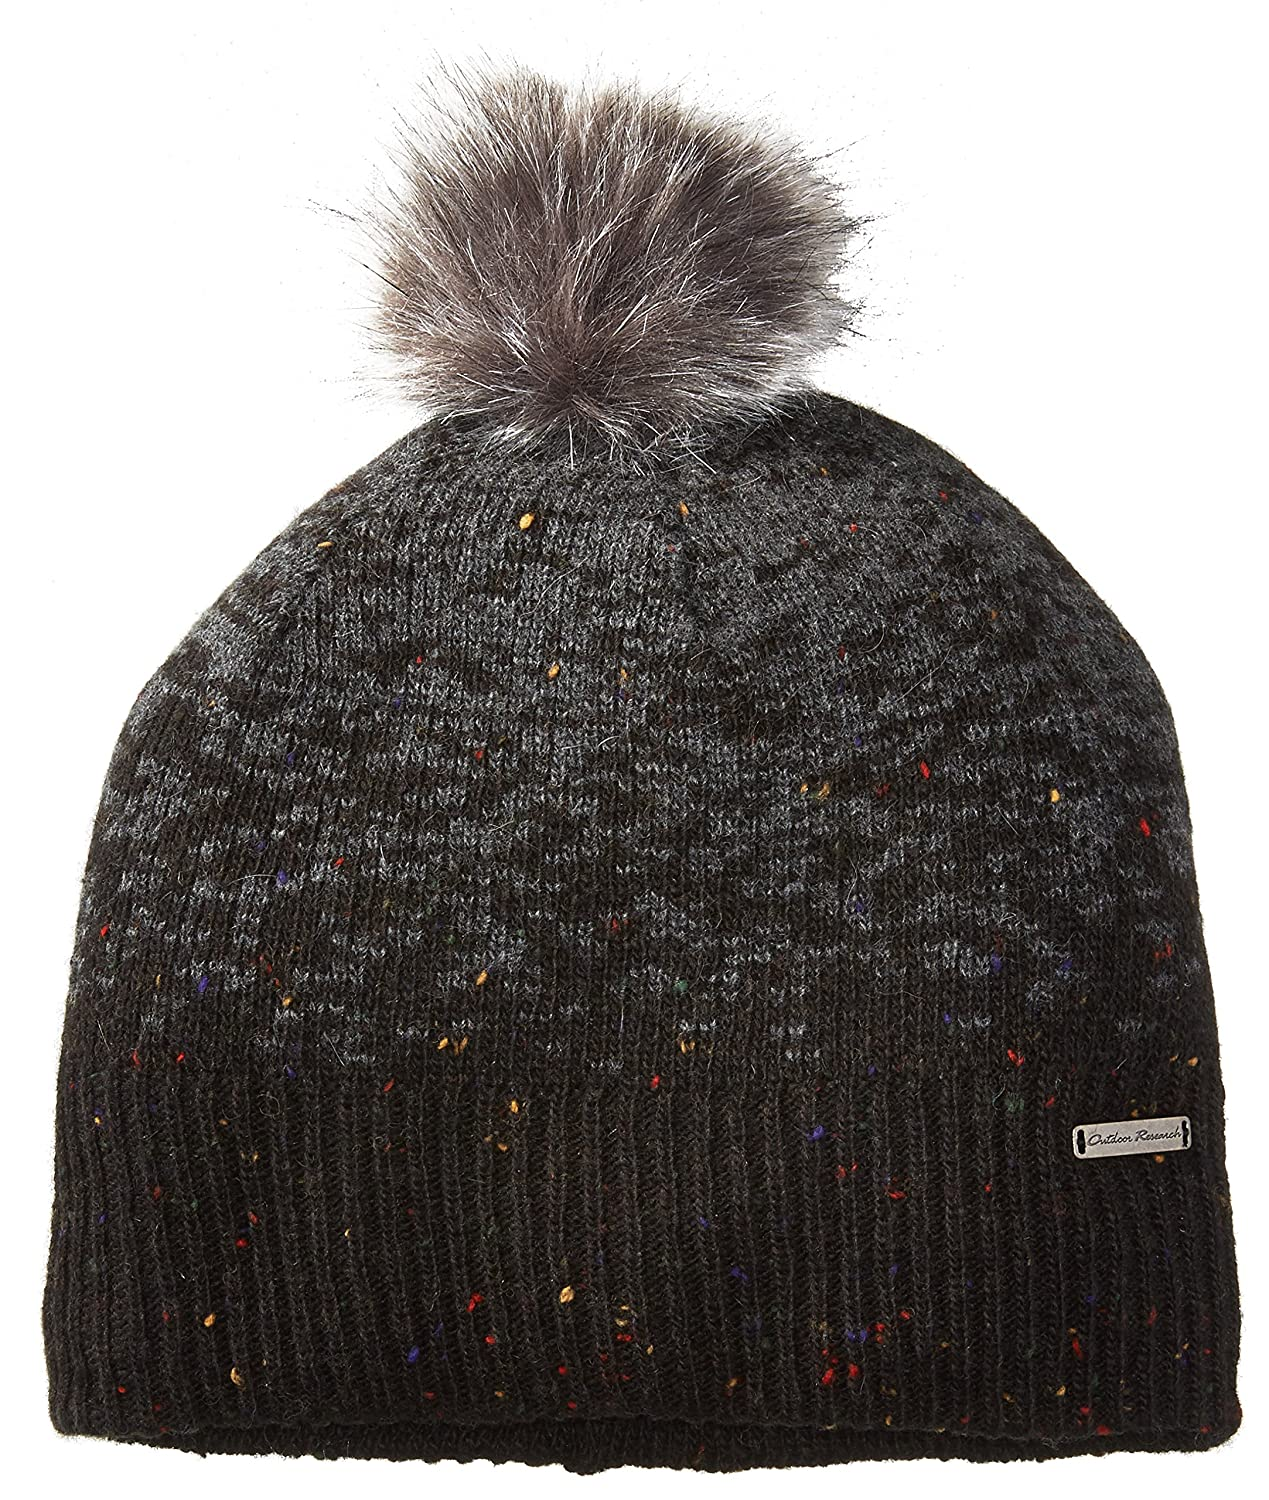 Outdoor Research Effie Beanie Black 1size 254031